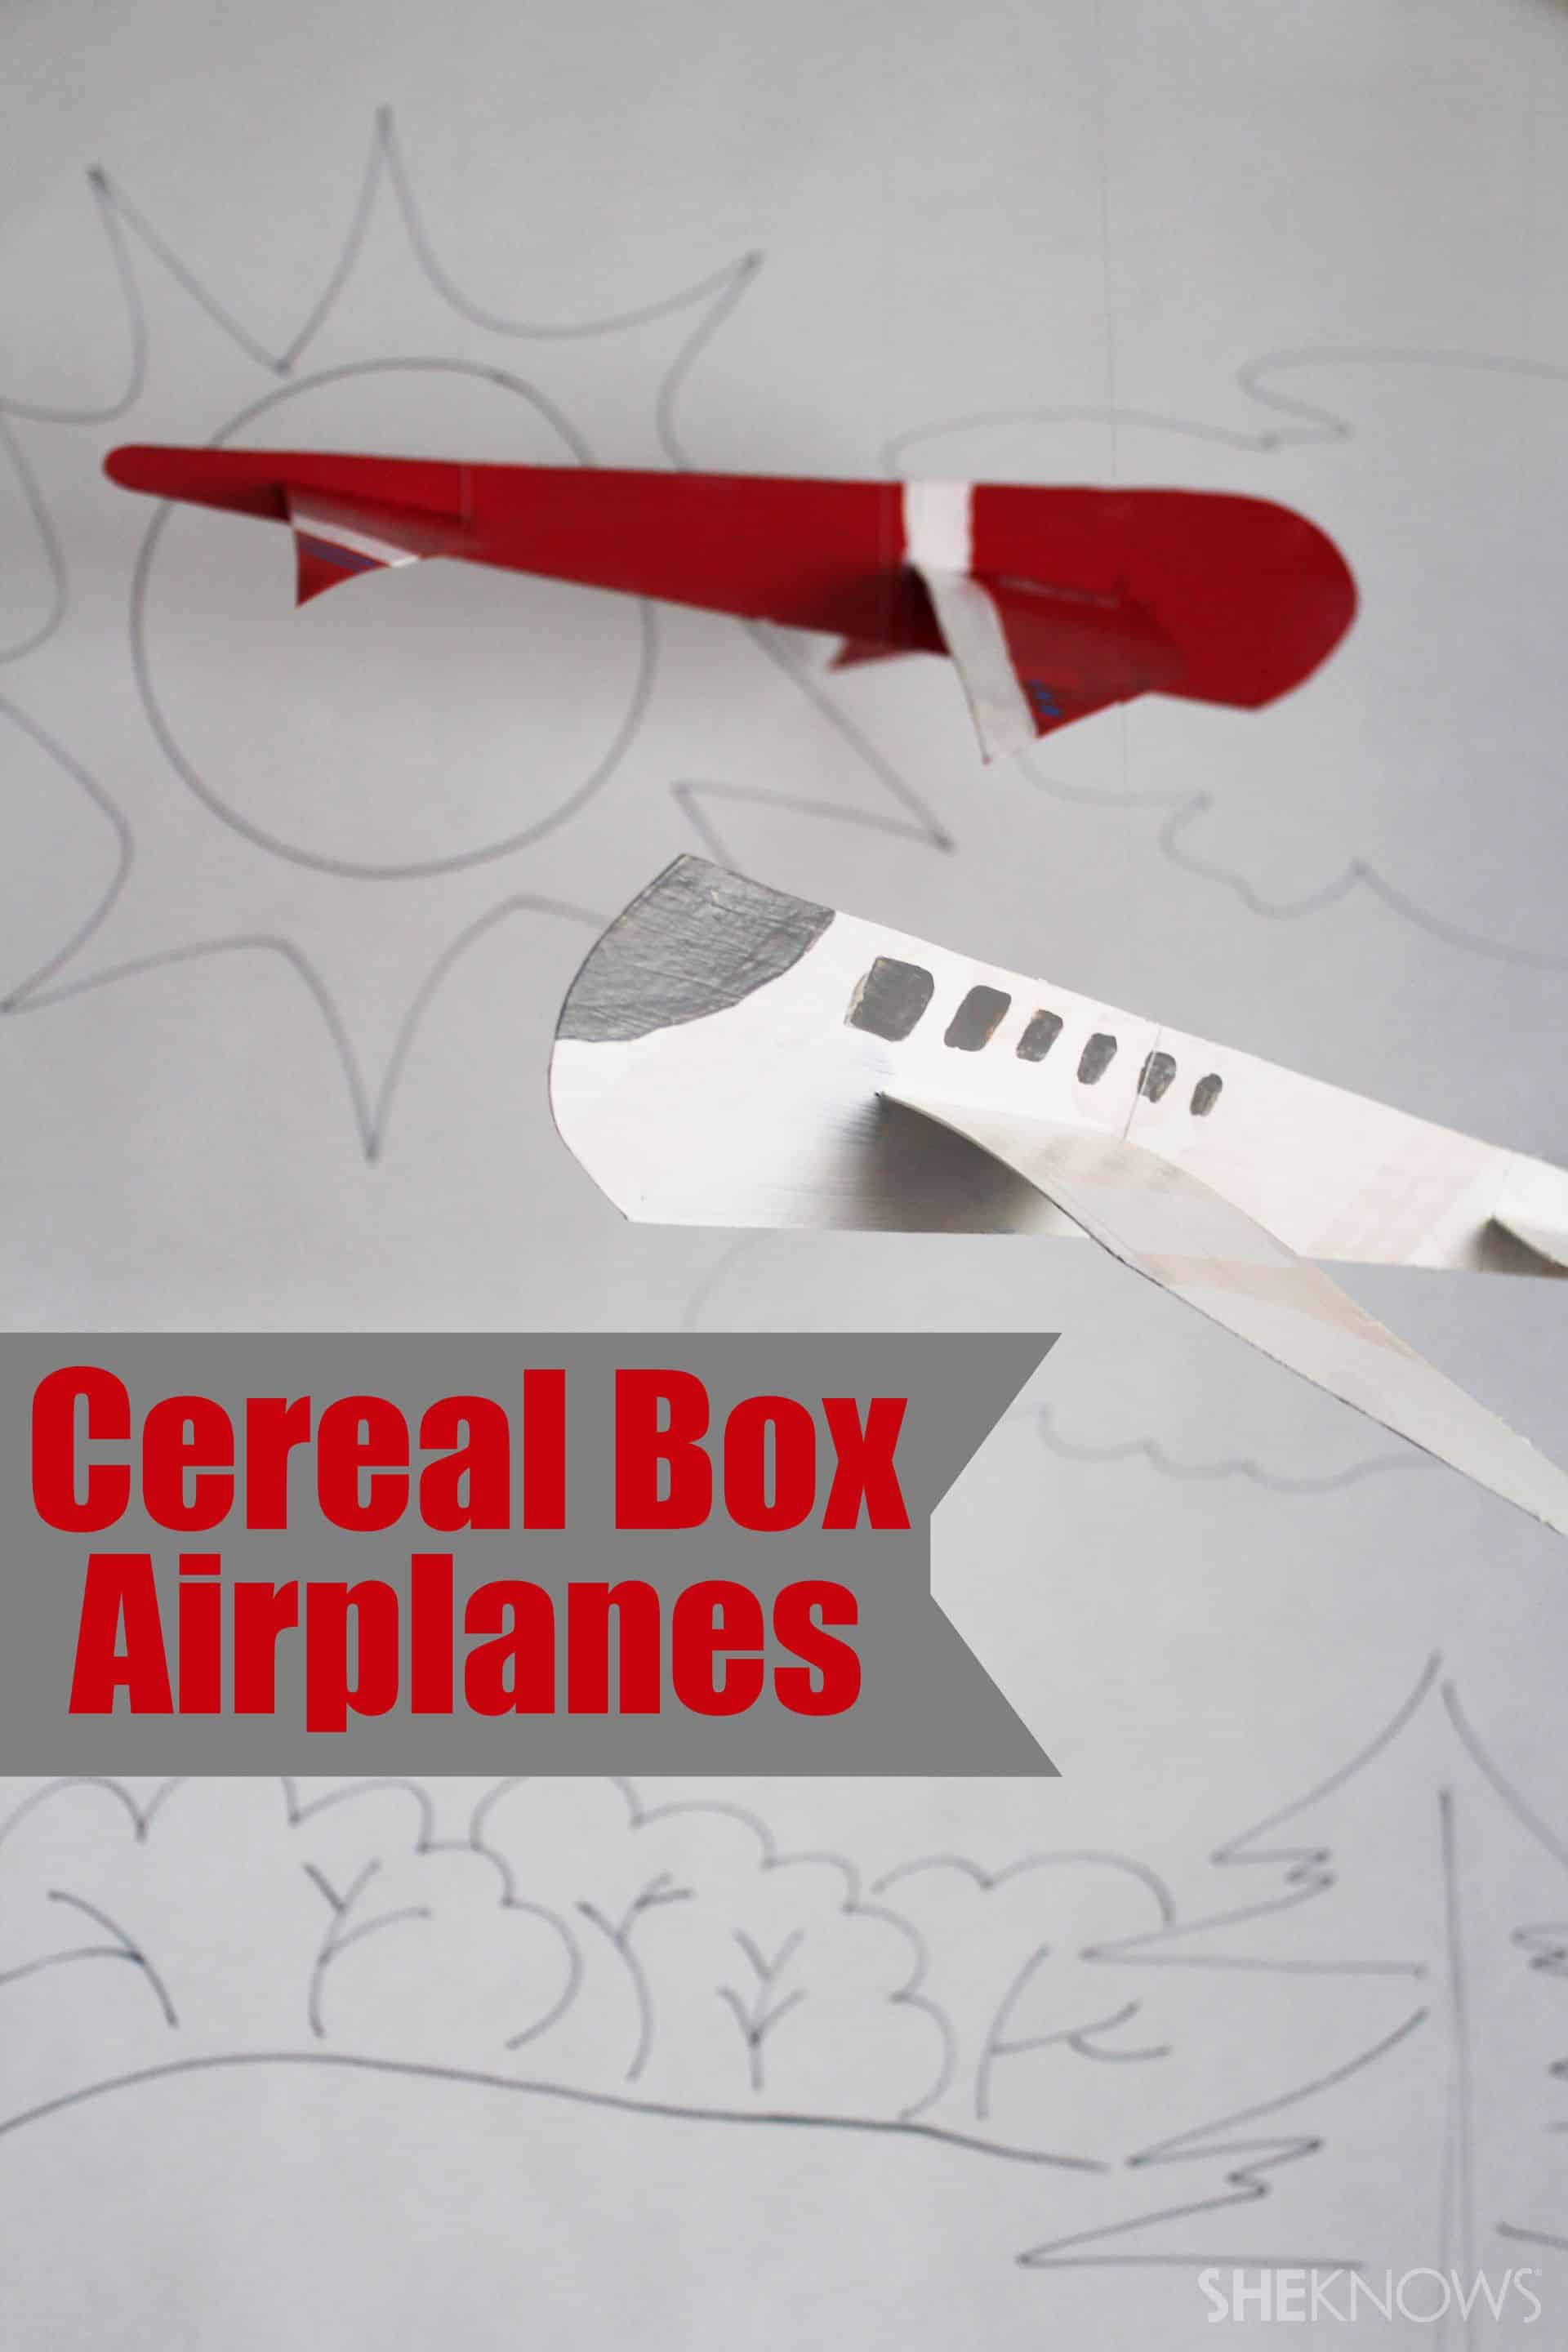 Cereal box airplanes